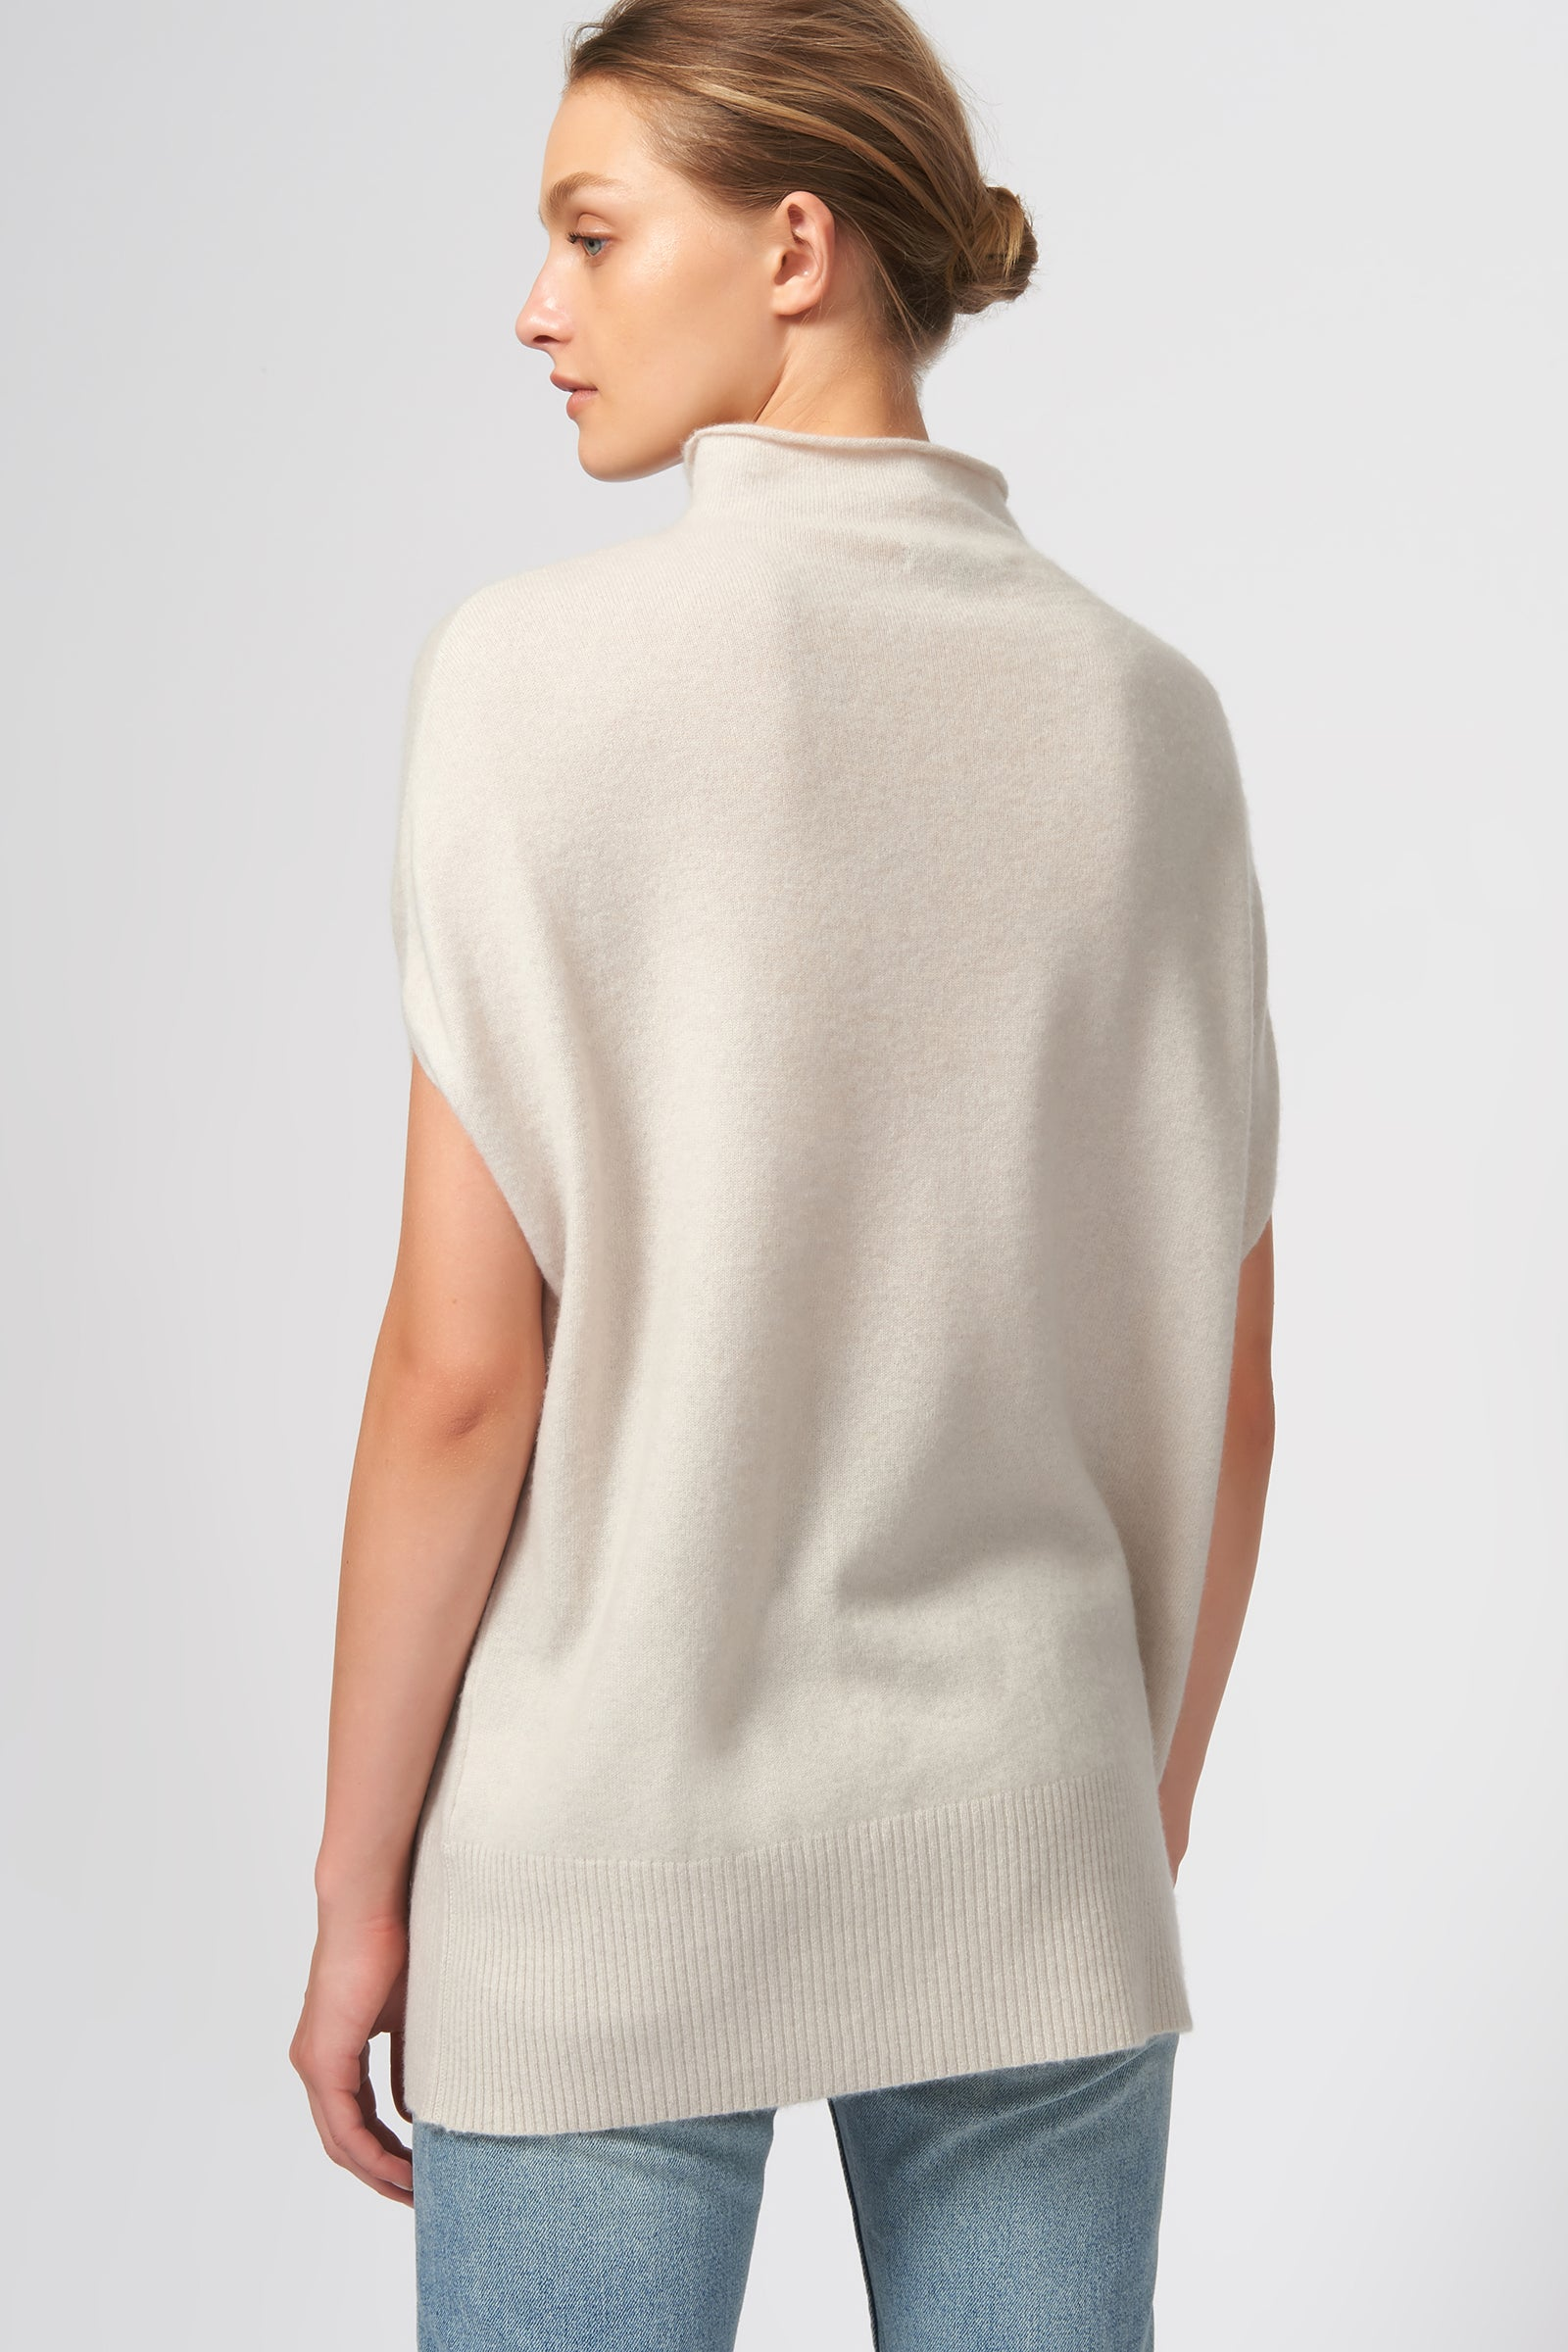 Kal Rieman Cashmere Funnelneck in Haze on Model Front View